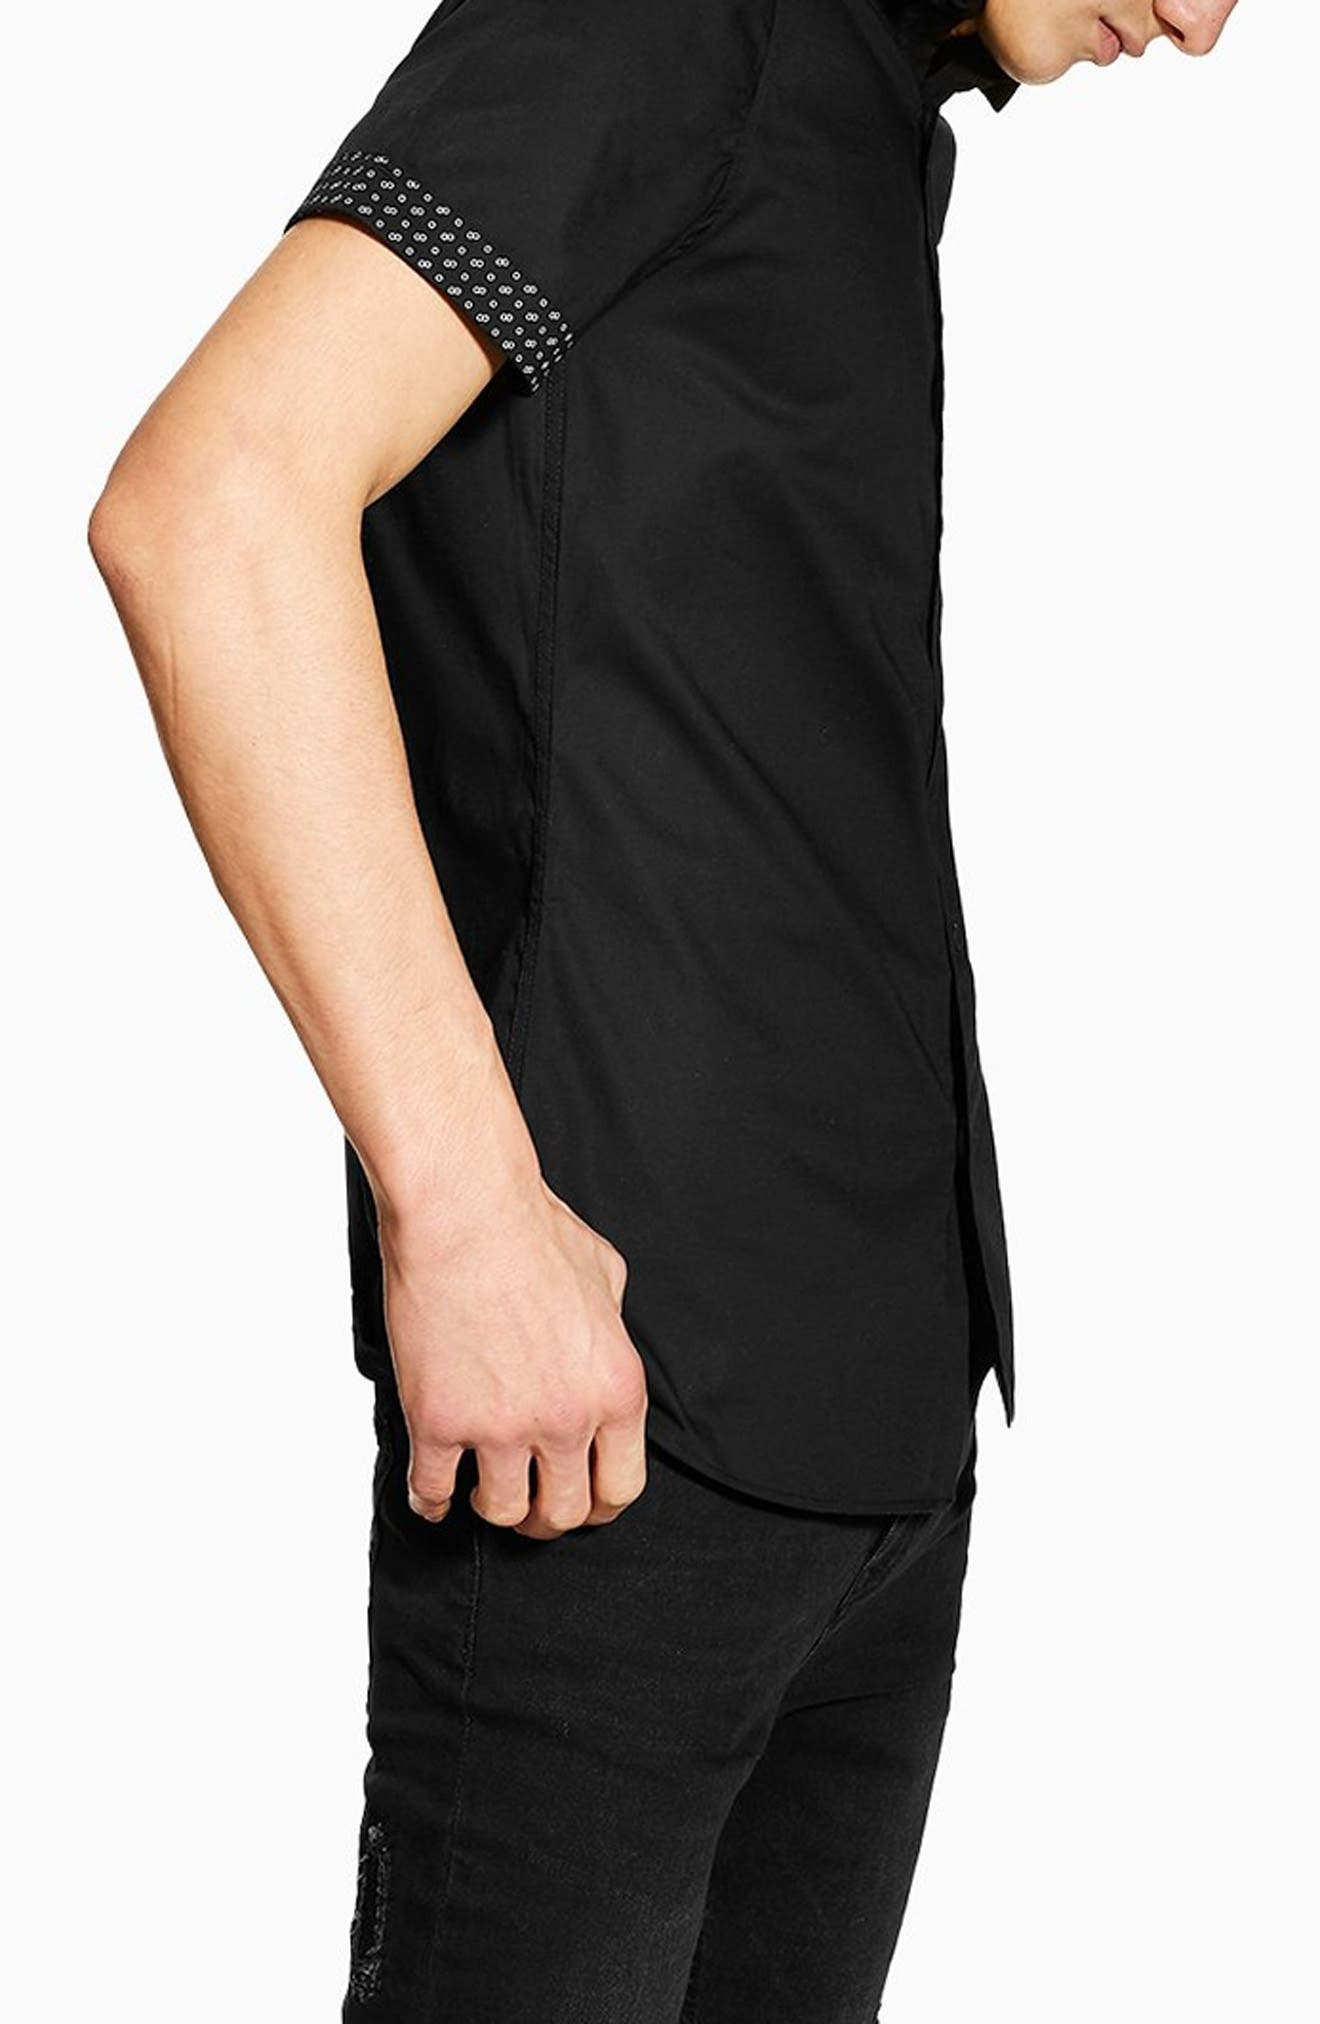 TOPMAN, Stretch Skinny Fit Shirt, Alternate thumbnail 3, color, 001